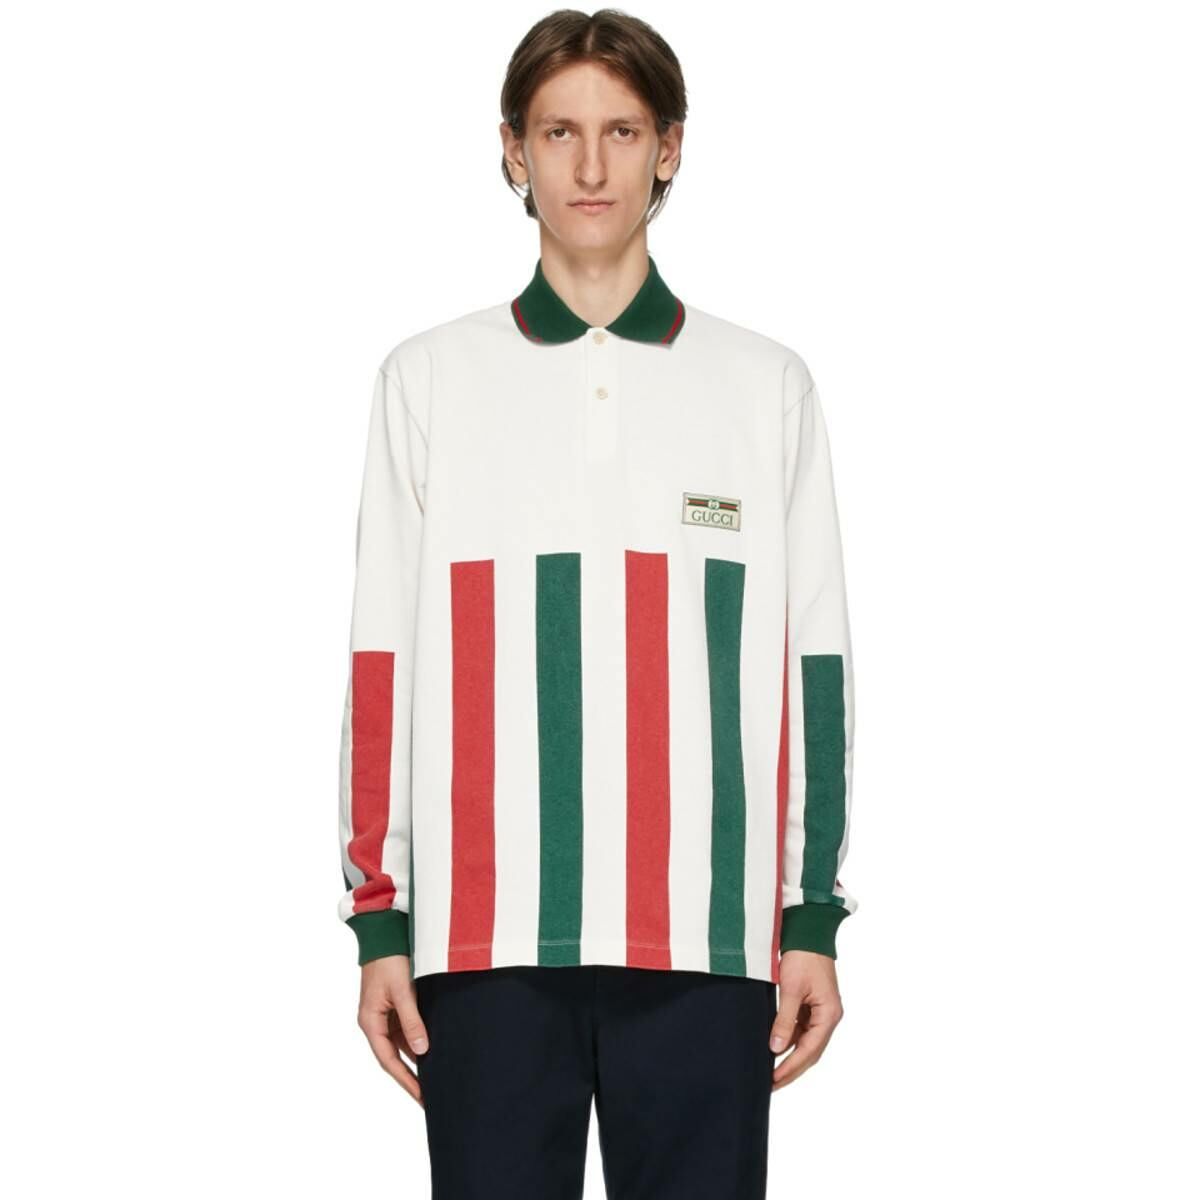 Gucci White Web Striped Long Sleeve Polo Ssense USA MEN Men FASHION Mens POLOSHIRTS